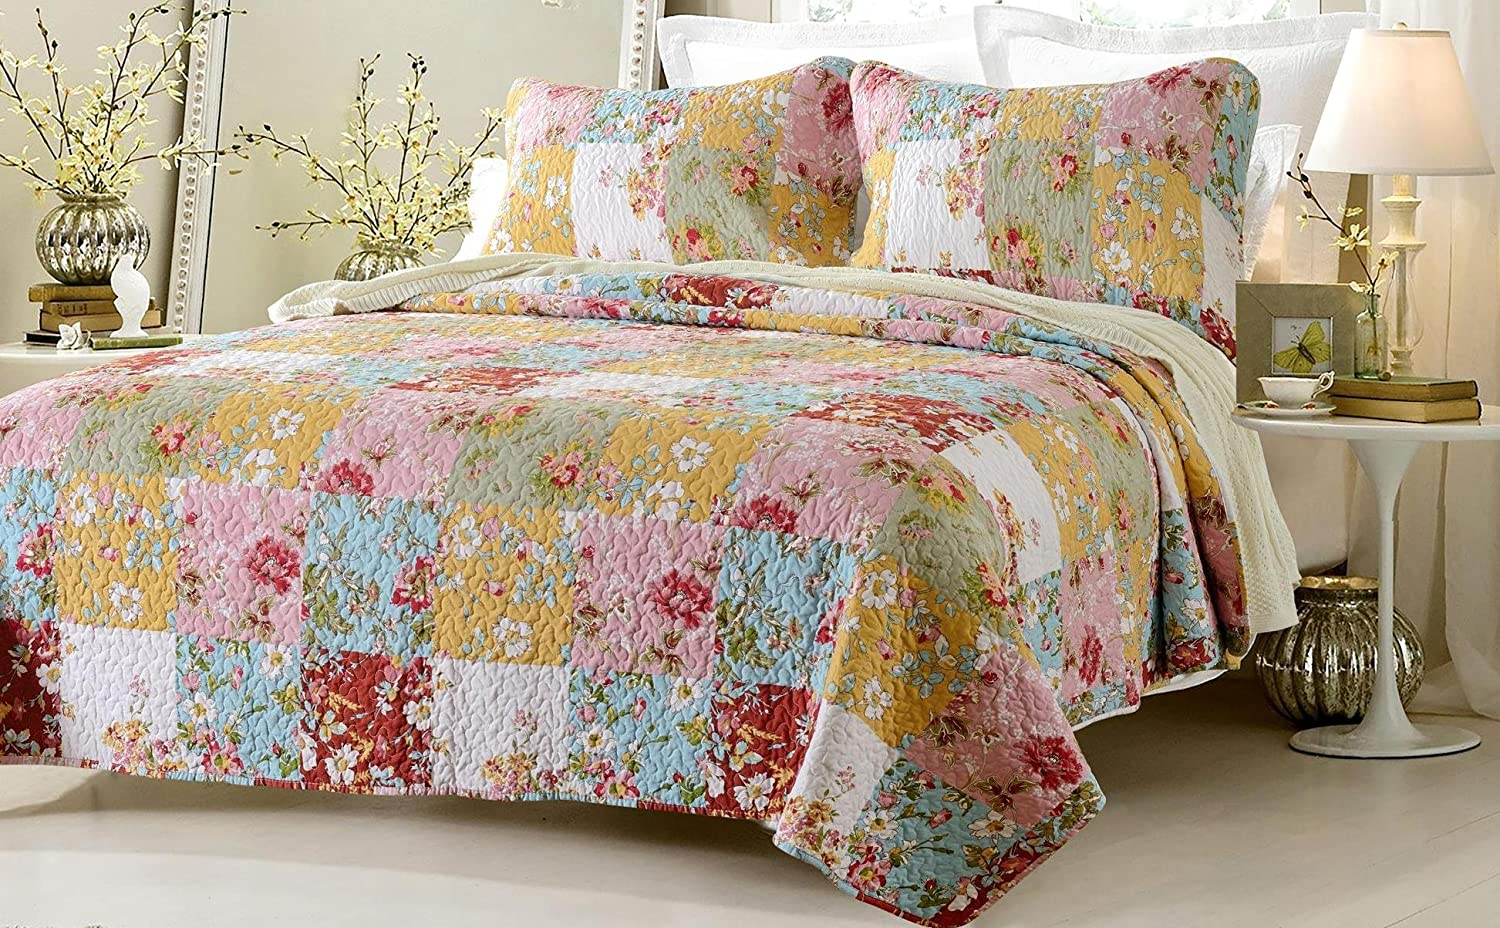 2pc Prairie Multi Color Printed Patchwork Quilt Set Style # 1003 - Twin/Twin XL - Cherry Hill Collection